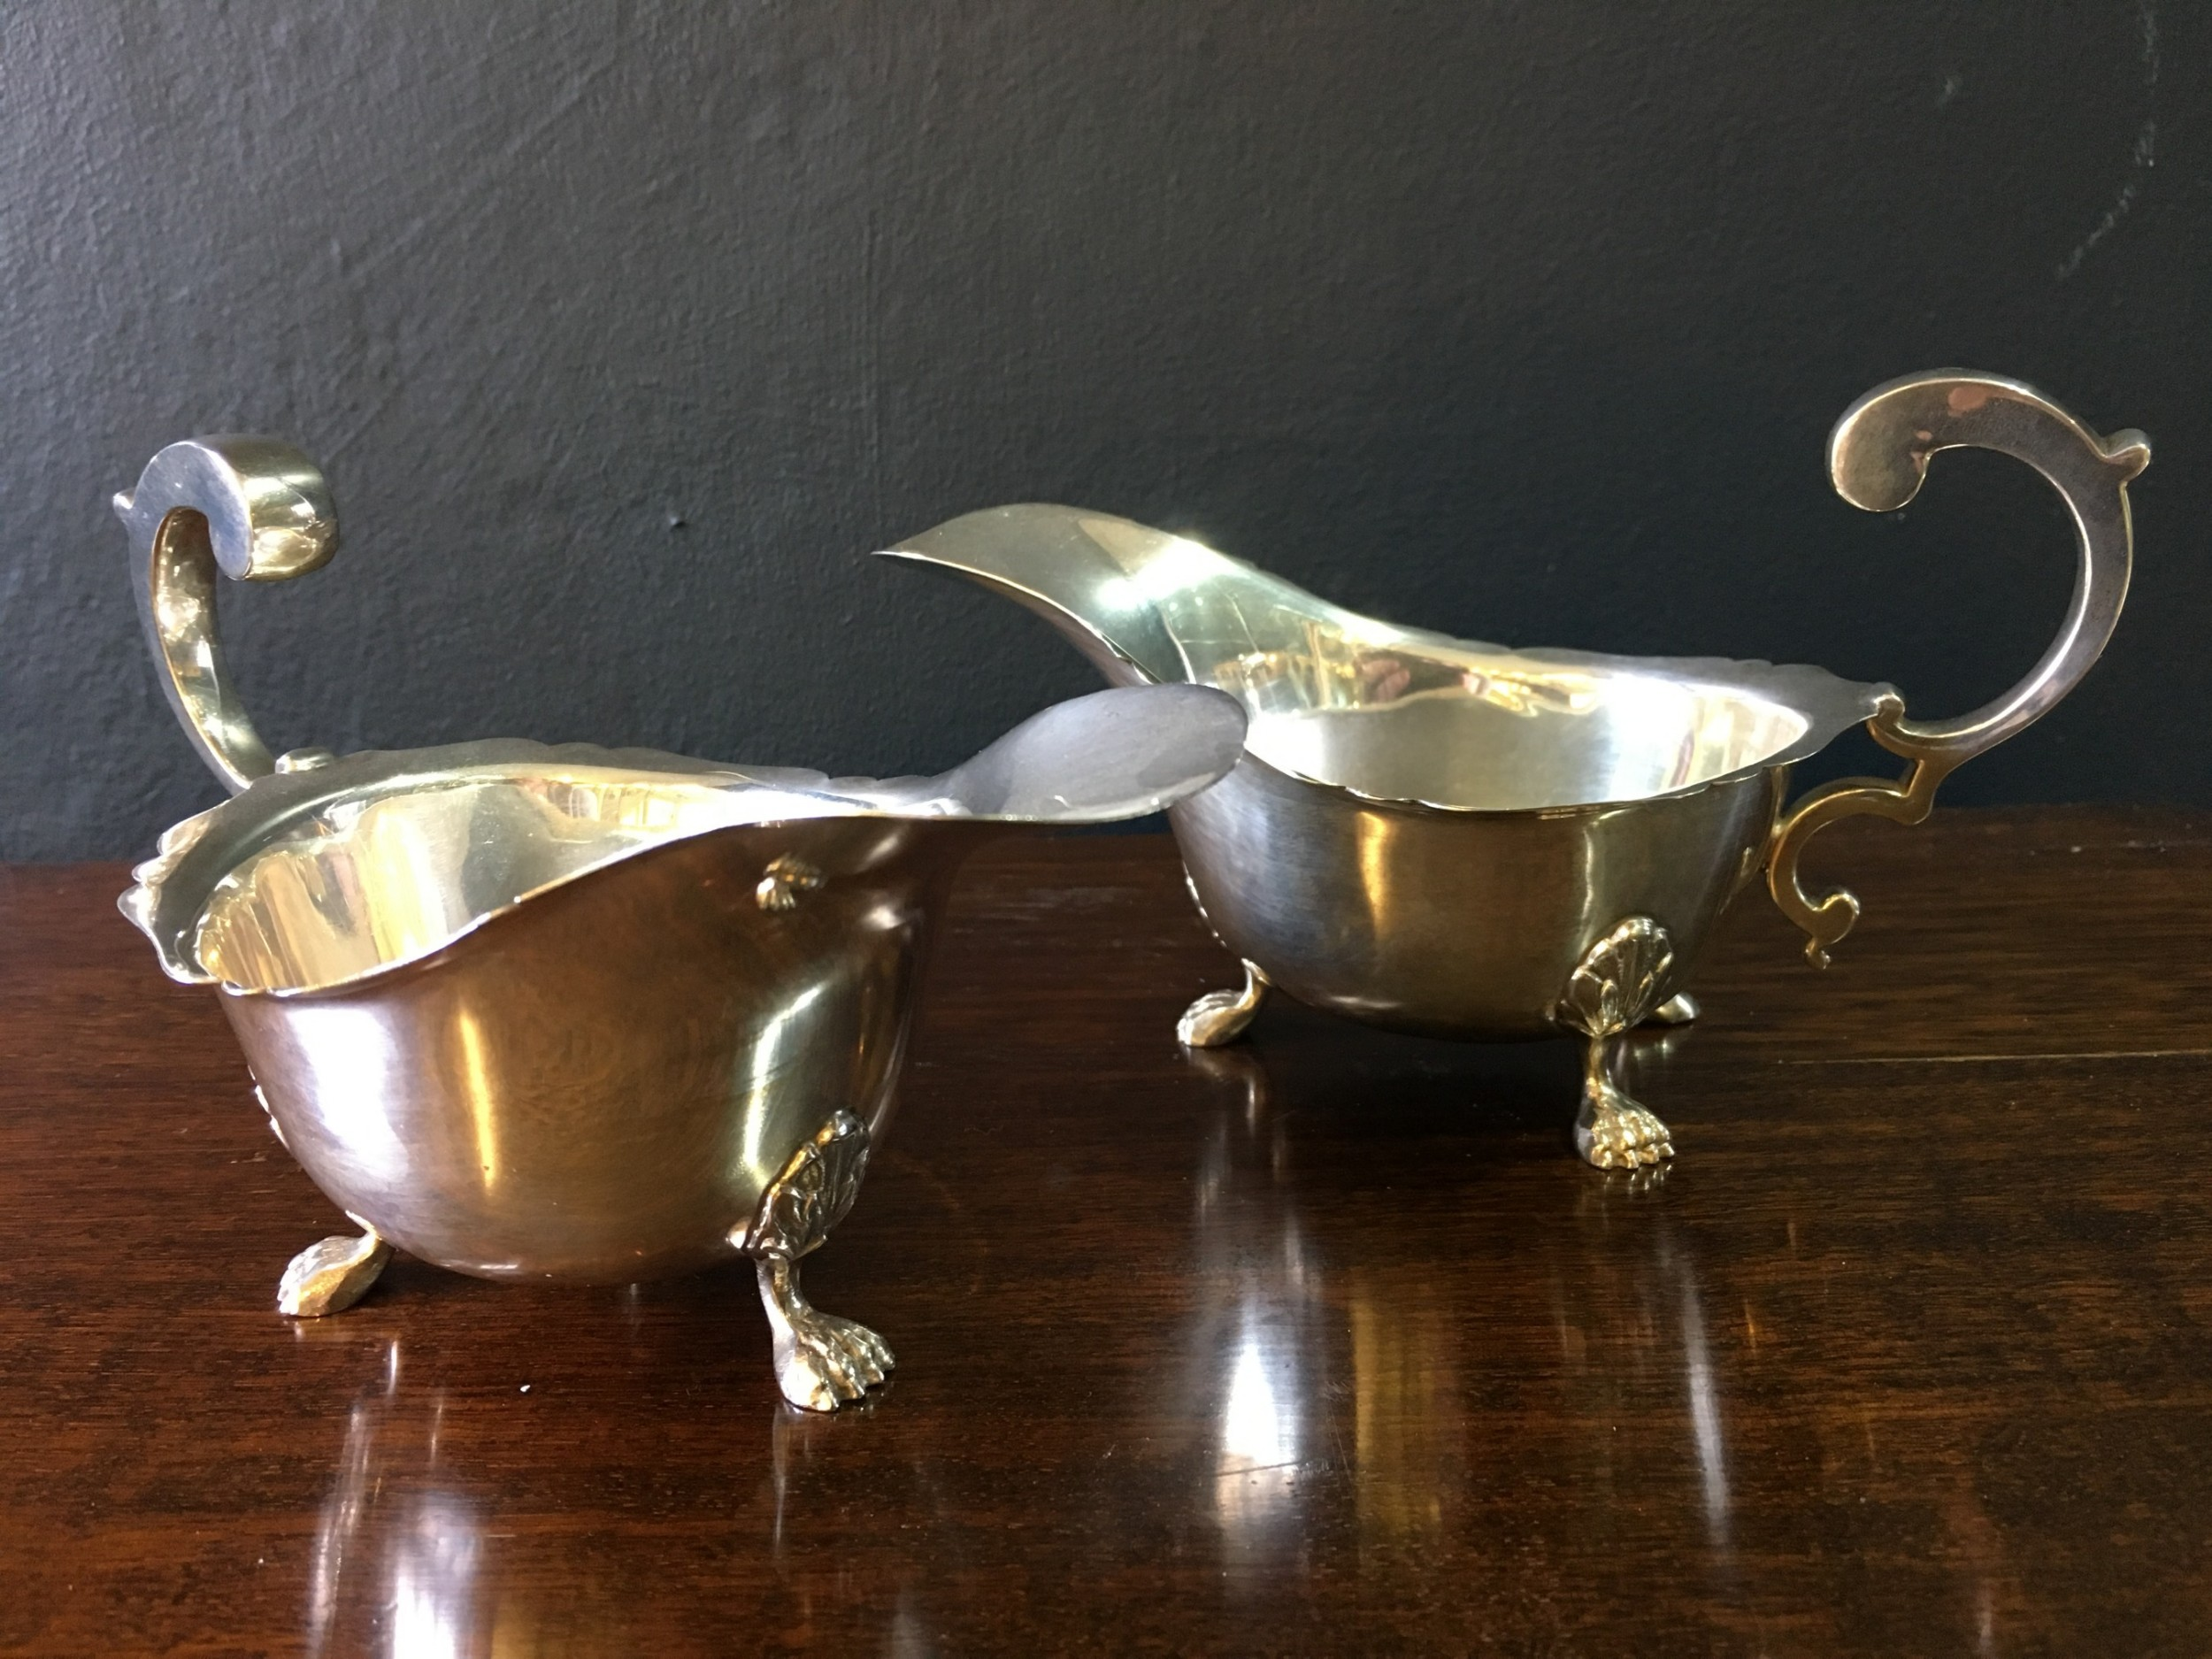 william neale ltd pair of silver sauce boats with with scroll handles acanthusclaw feet birmingham 1913